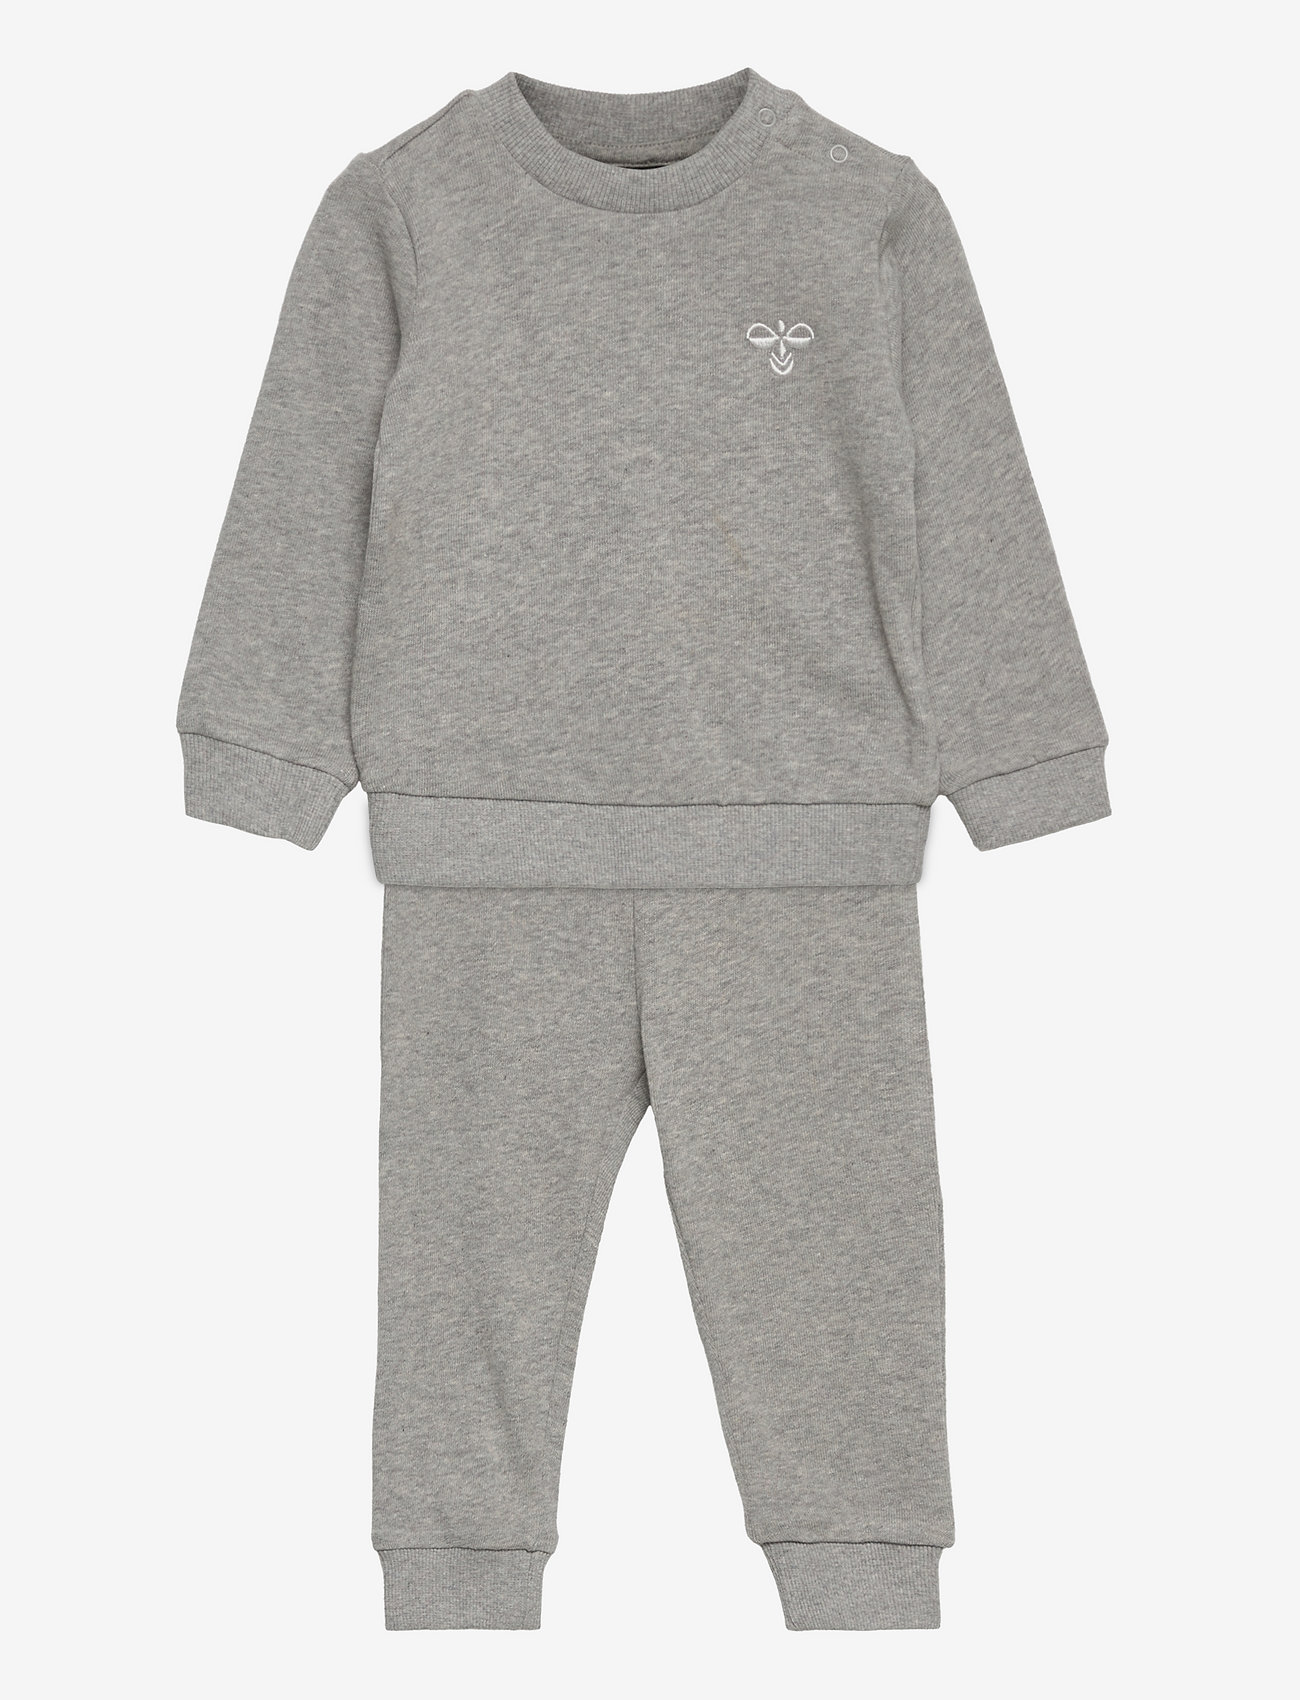 Hummel - hmlSANTO CREW SUIT - 2-piece sets - grey melange - 0